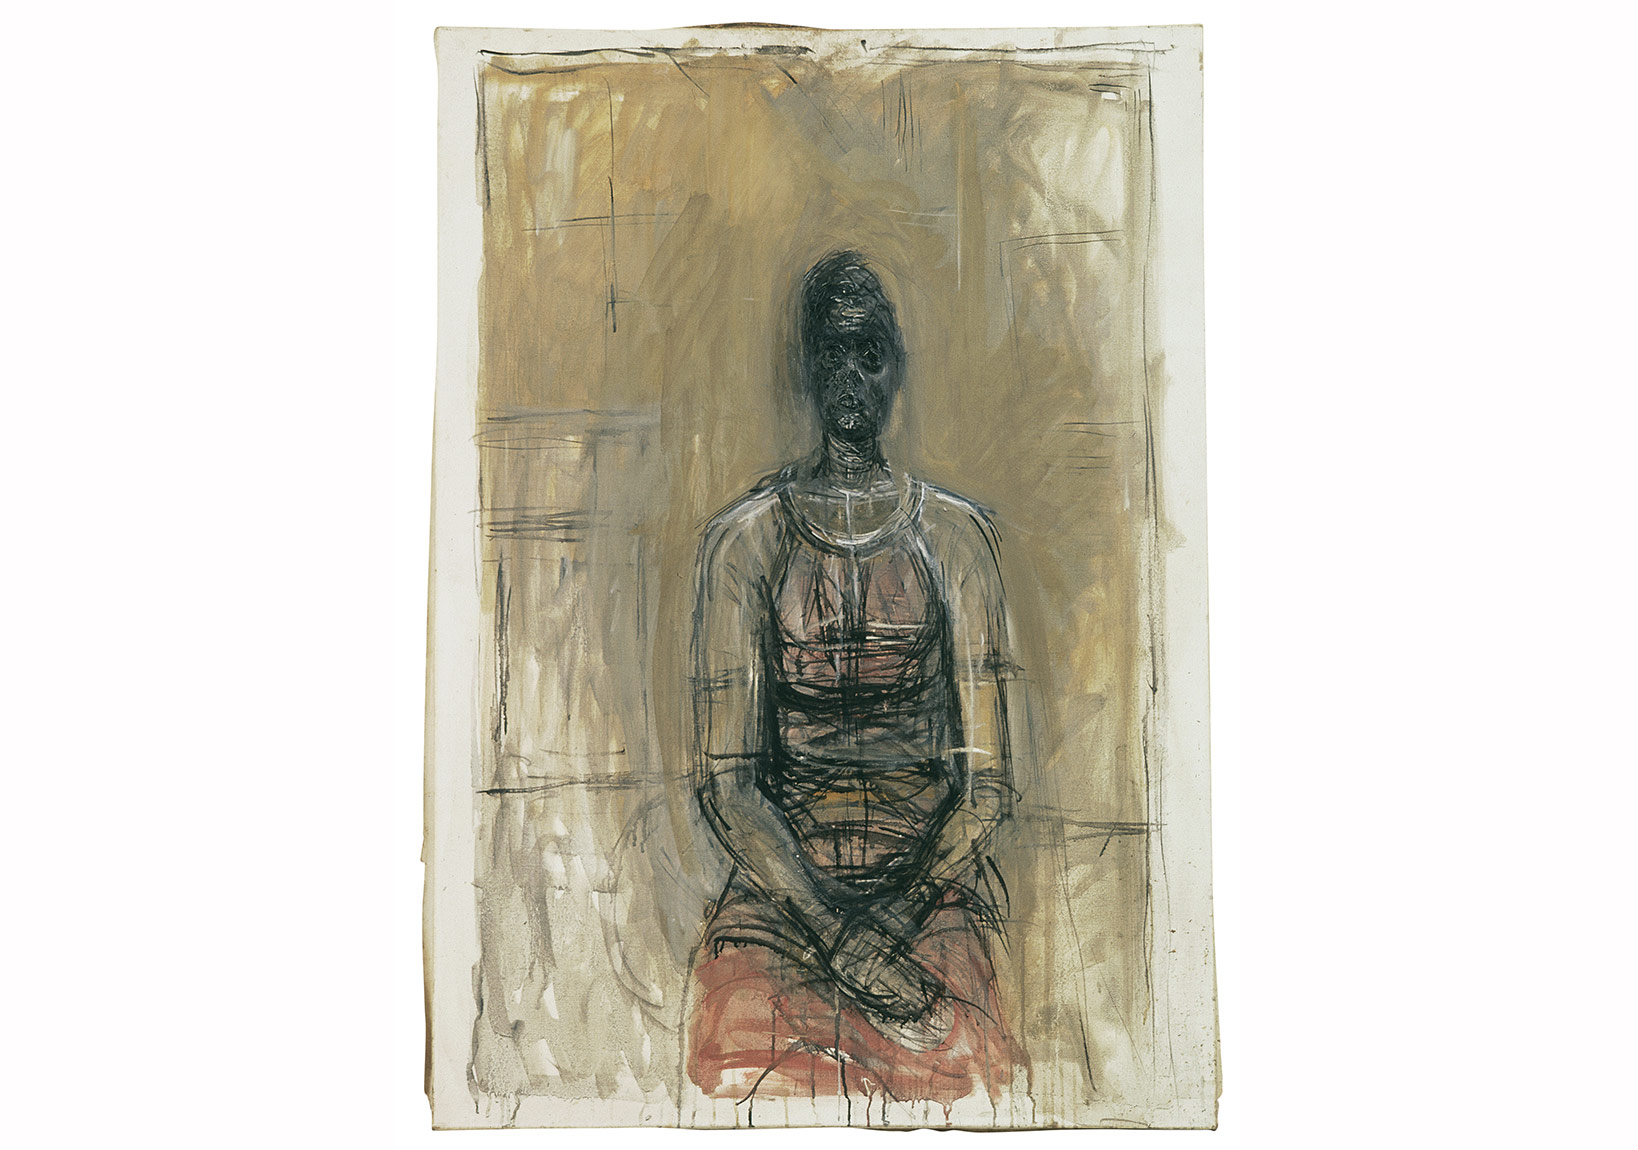 Alberto Giacometti, Kırmızı Elbiseli Caroline, yak. 1964- 1965 Caroline in a Red Dress, c. 1964-1965 Tuval üstüne yağlıboya / Oil on canvas 92,3 x 65,4 cm Giacometti Vakfı Koleksiyonu, Paris, env. 1994-0619 Giacometti Foundation Collection, Paris, inv. 1994-0619 © Estate Giacometti (Fondation Giacometti + ADAGP) Paris, 2015